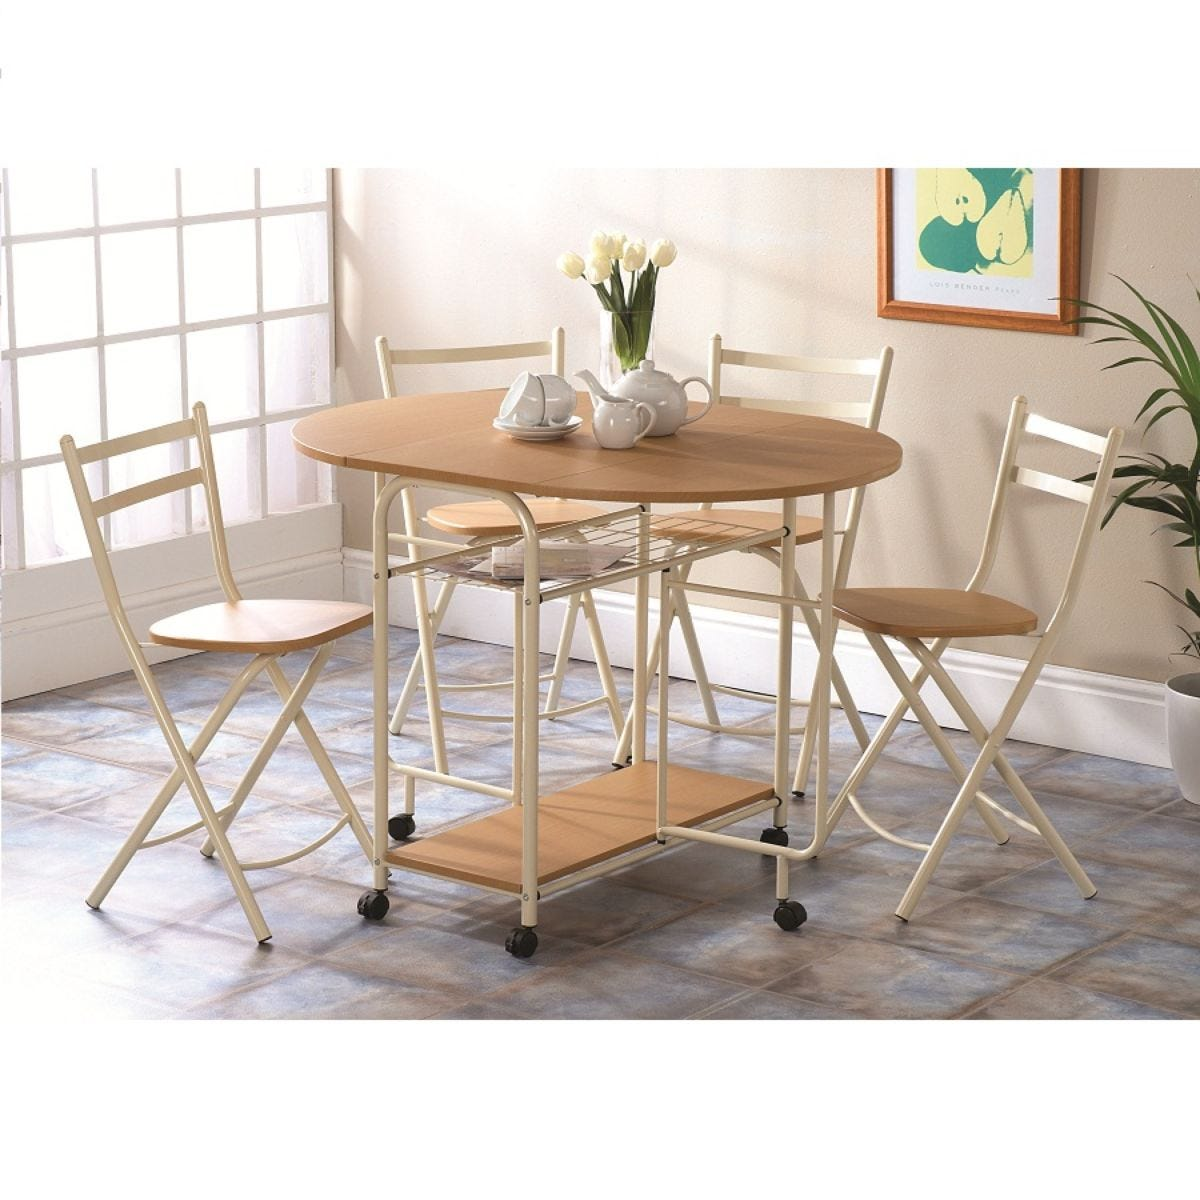 Gablemere Stowaway Dining Set - Table and 4 Chairs